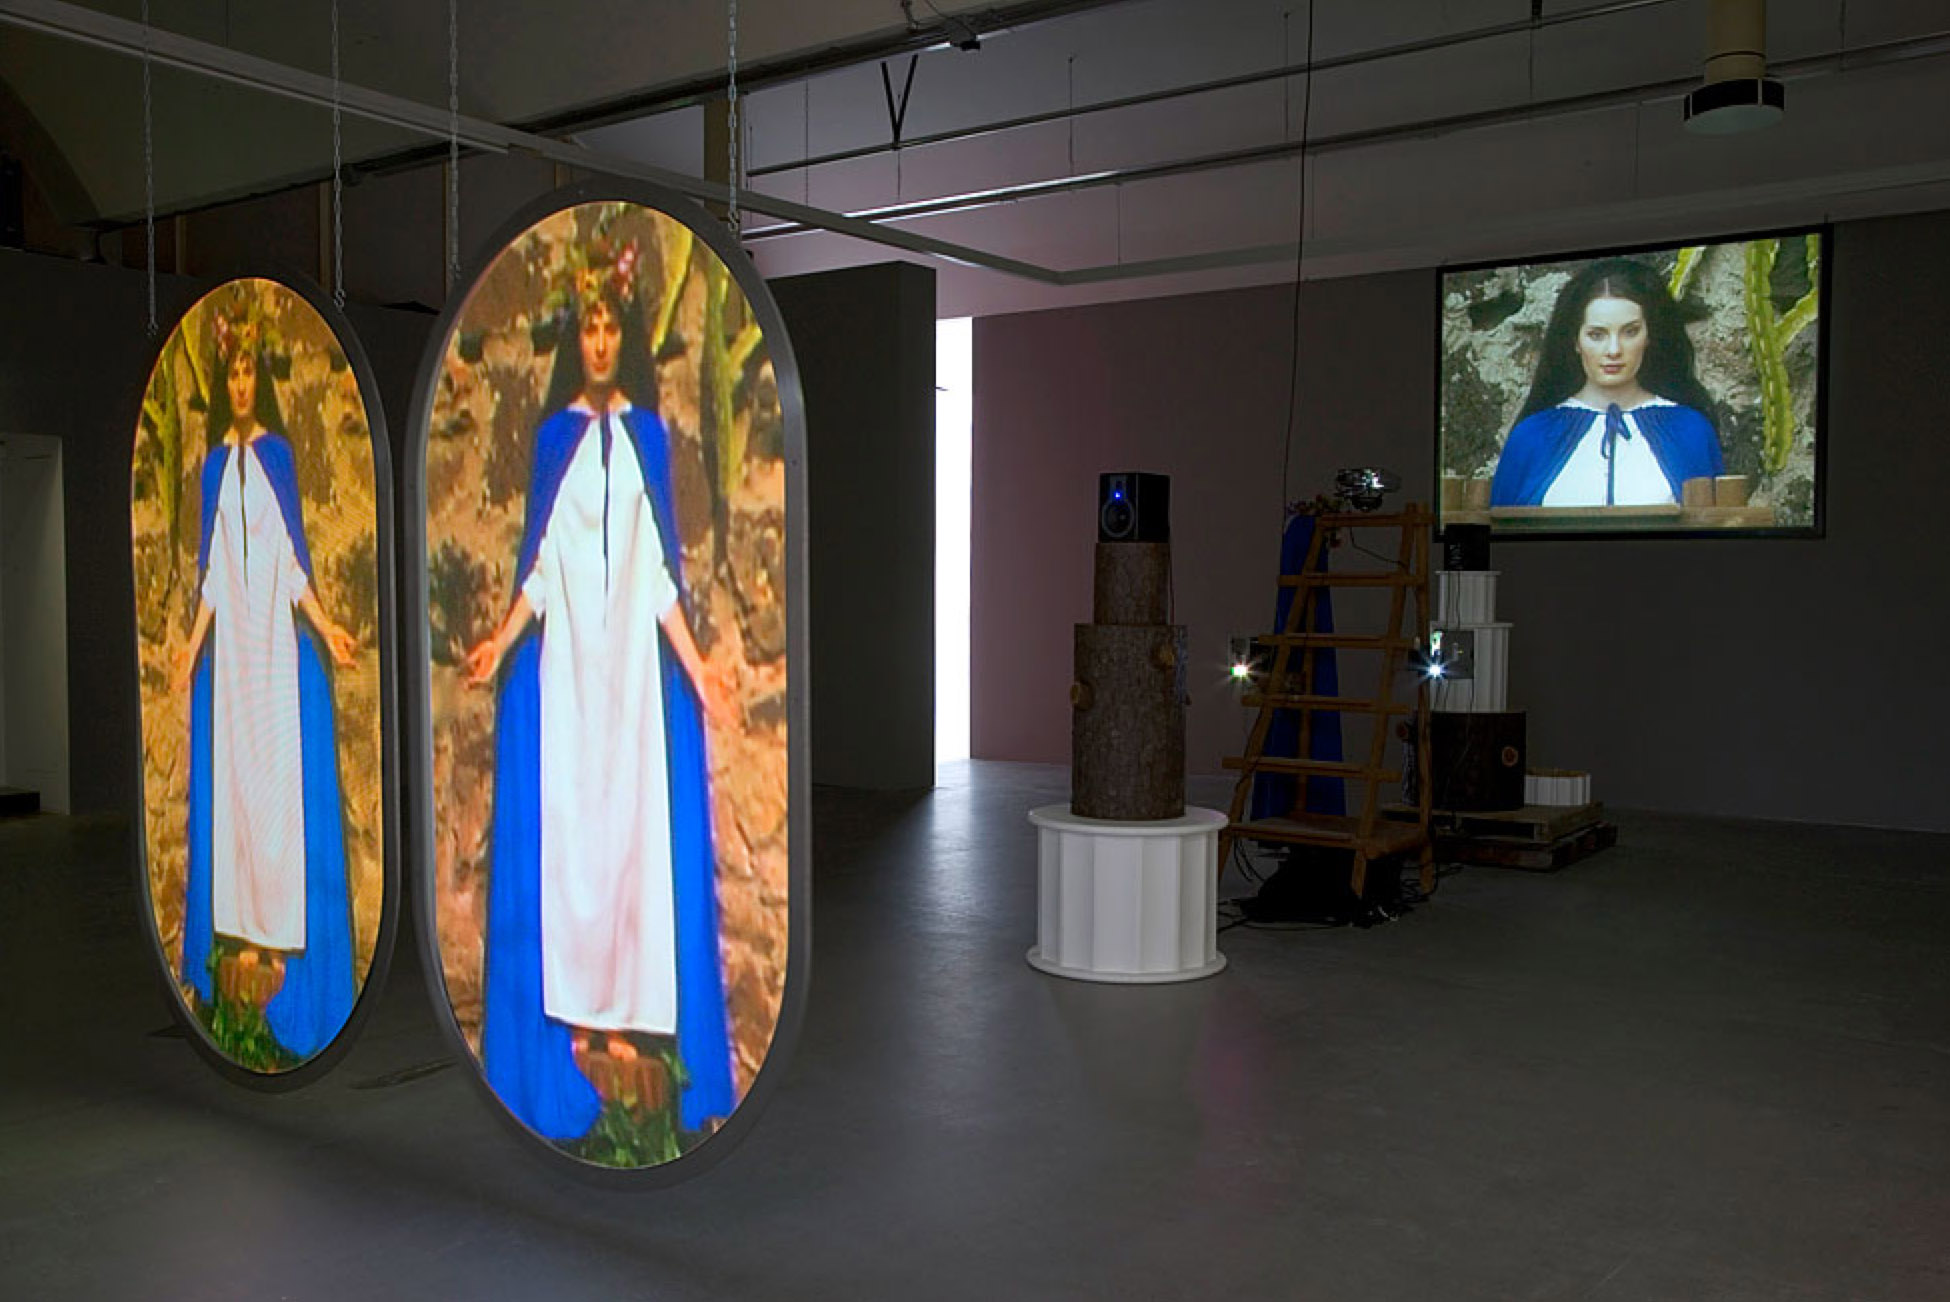 Mike Kelley, Switching Marys, 2004-2005, mixed media with video projections, 190.5 x 261.6 x 810.3 cm, Stedelijk Museum, Amsterdam, photo: Fredrik Nilsen, courtesy Mike Kelley Foundation for the Arts.